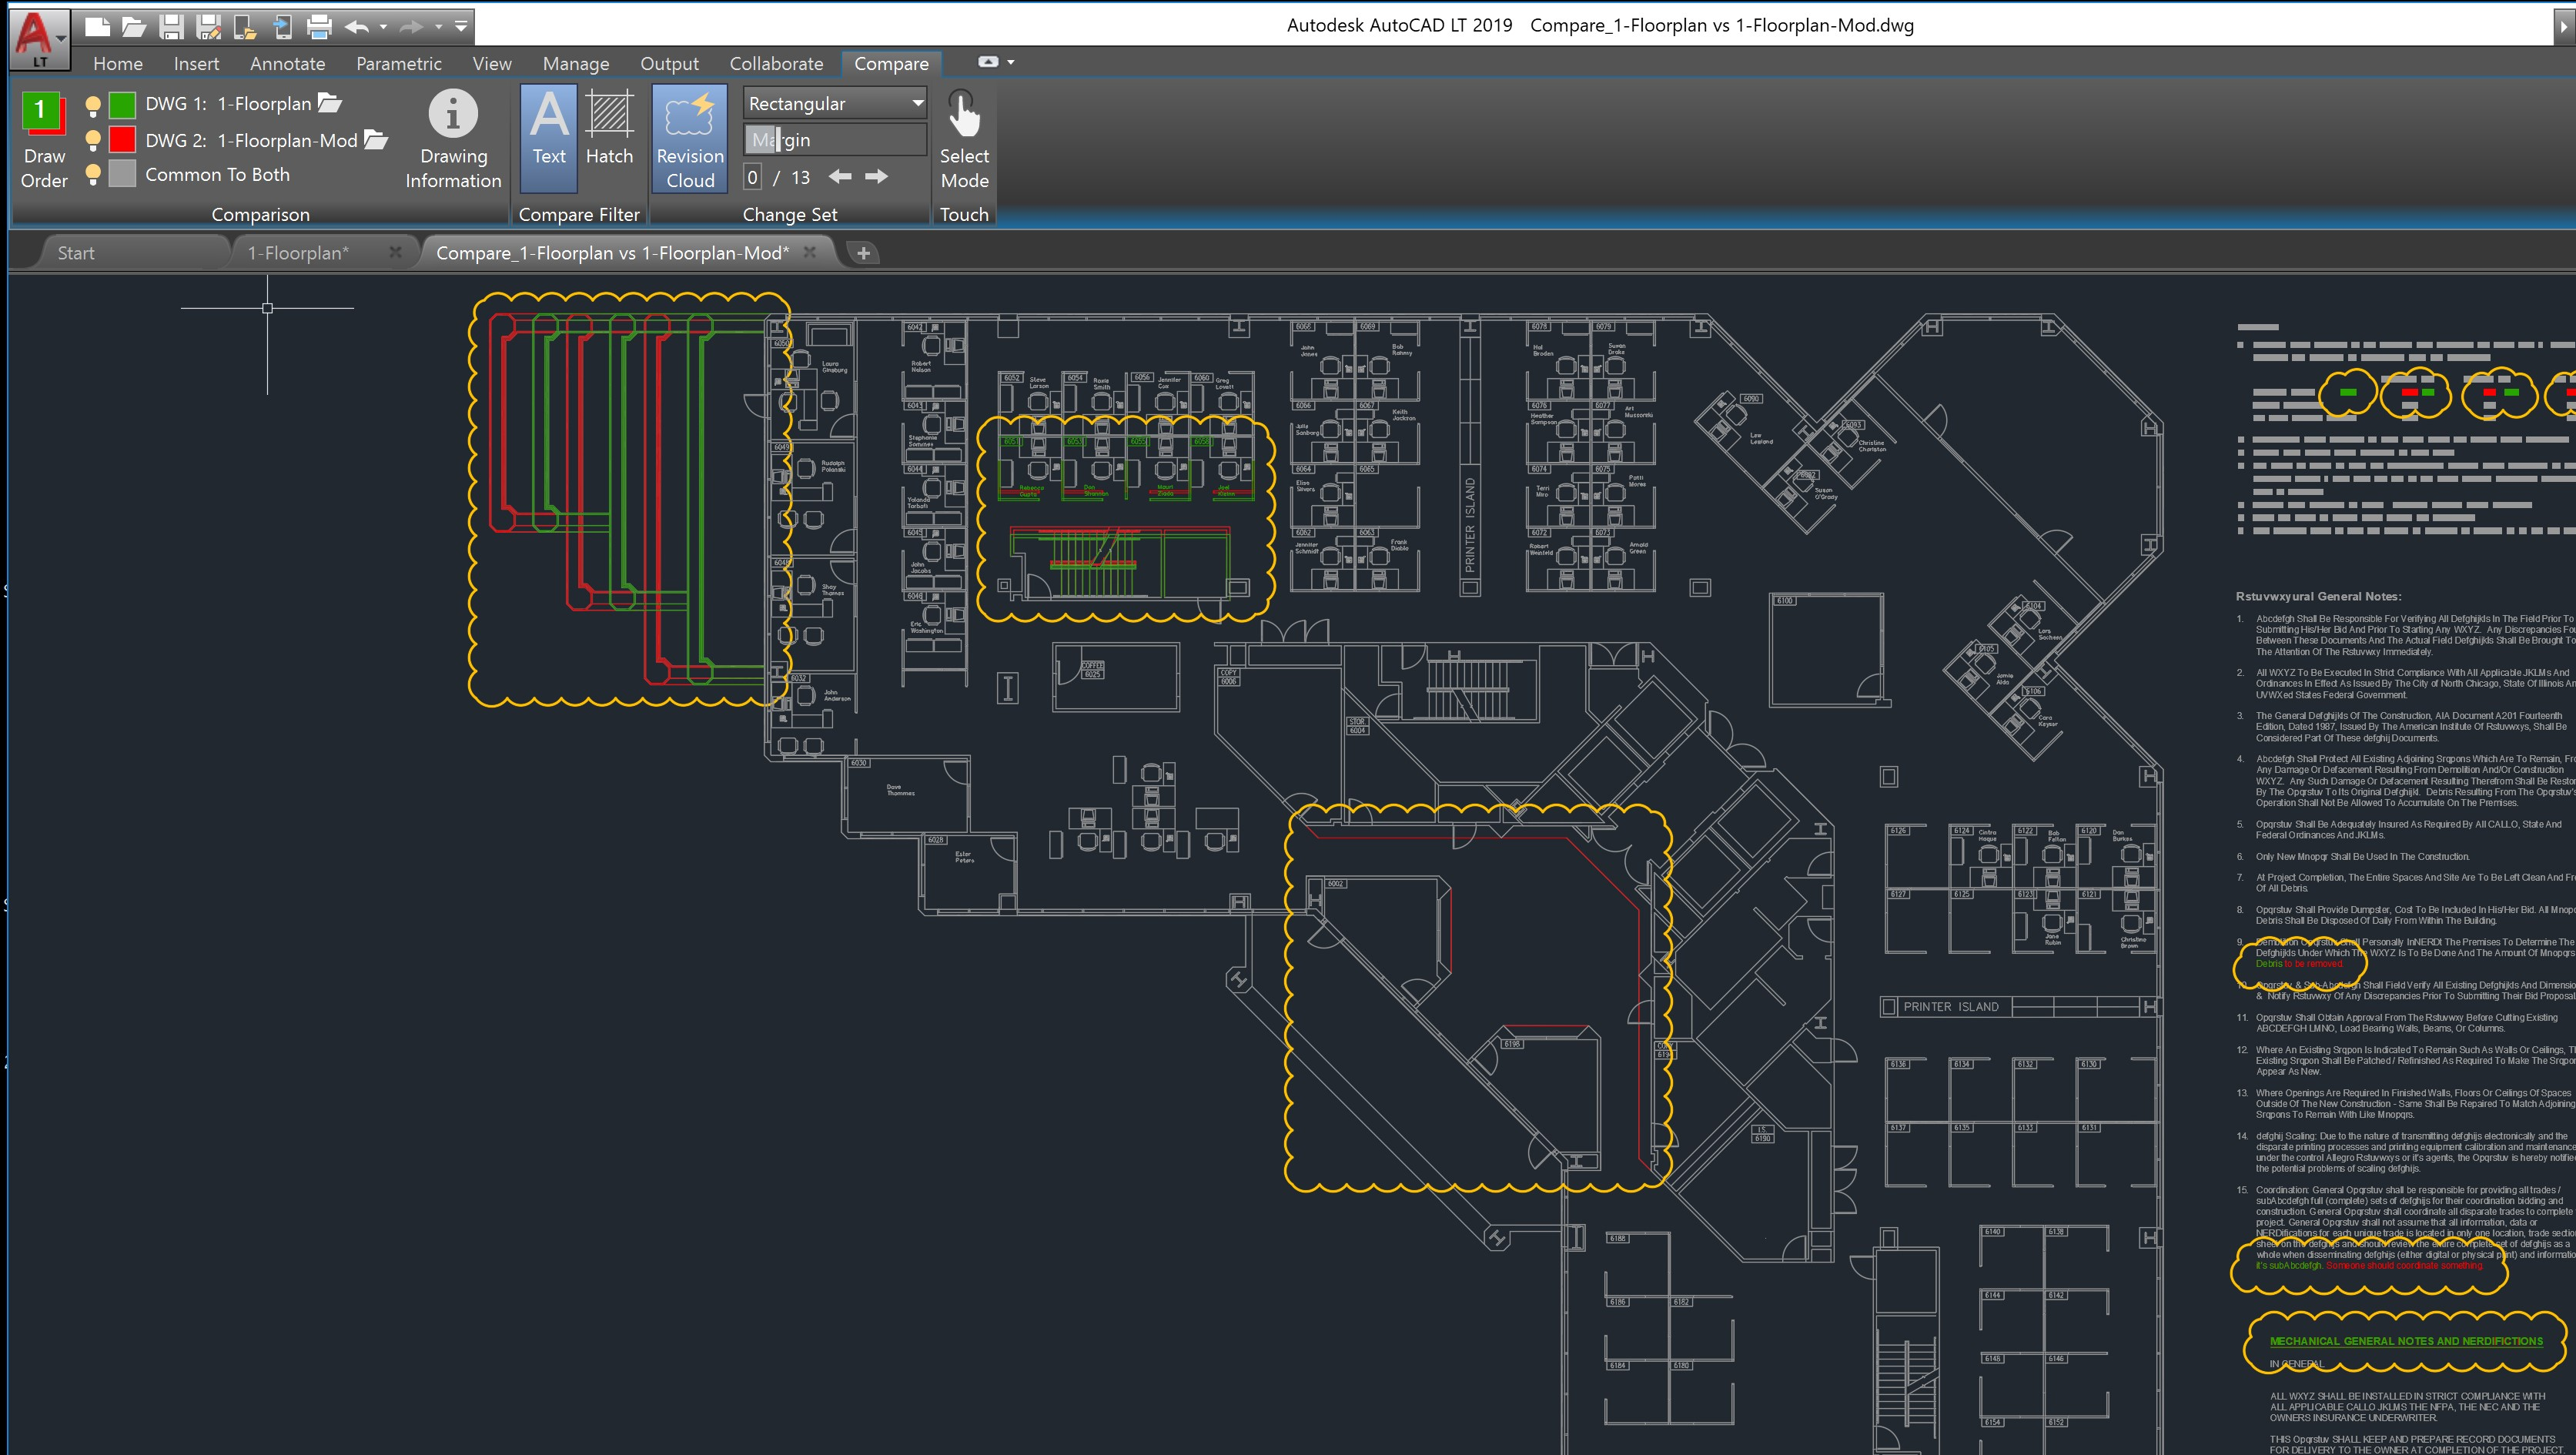 AutoCAD LT - Trusted DWG